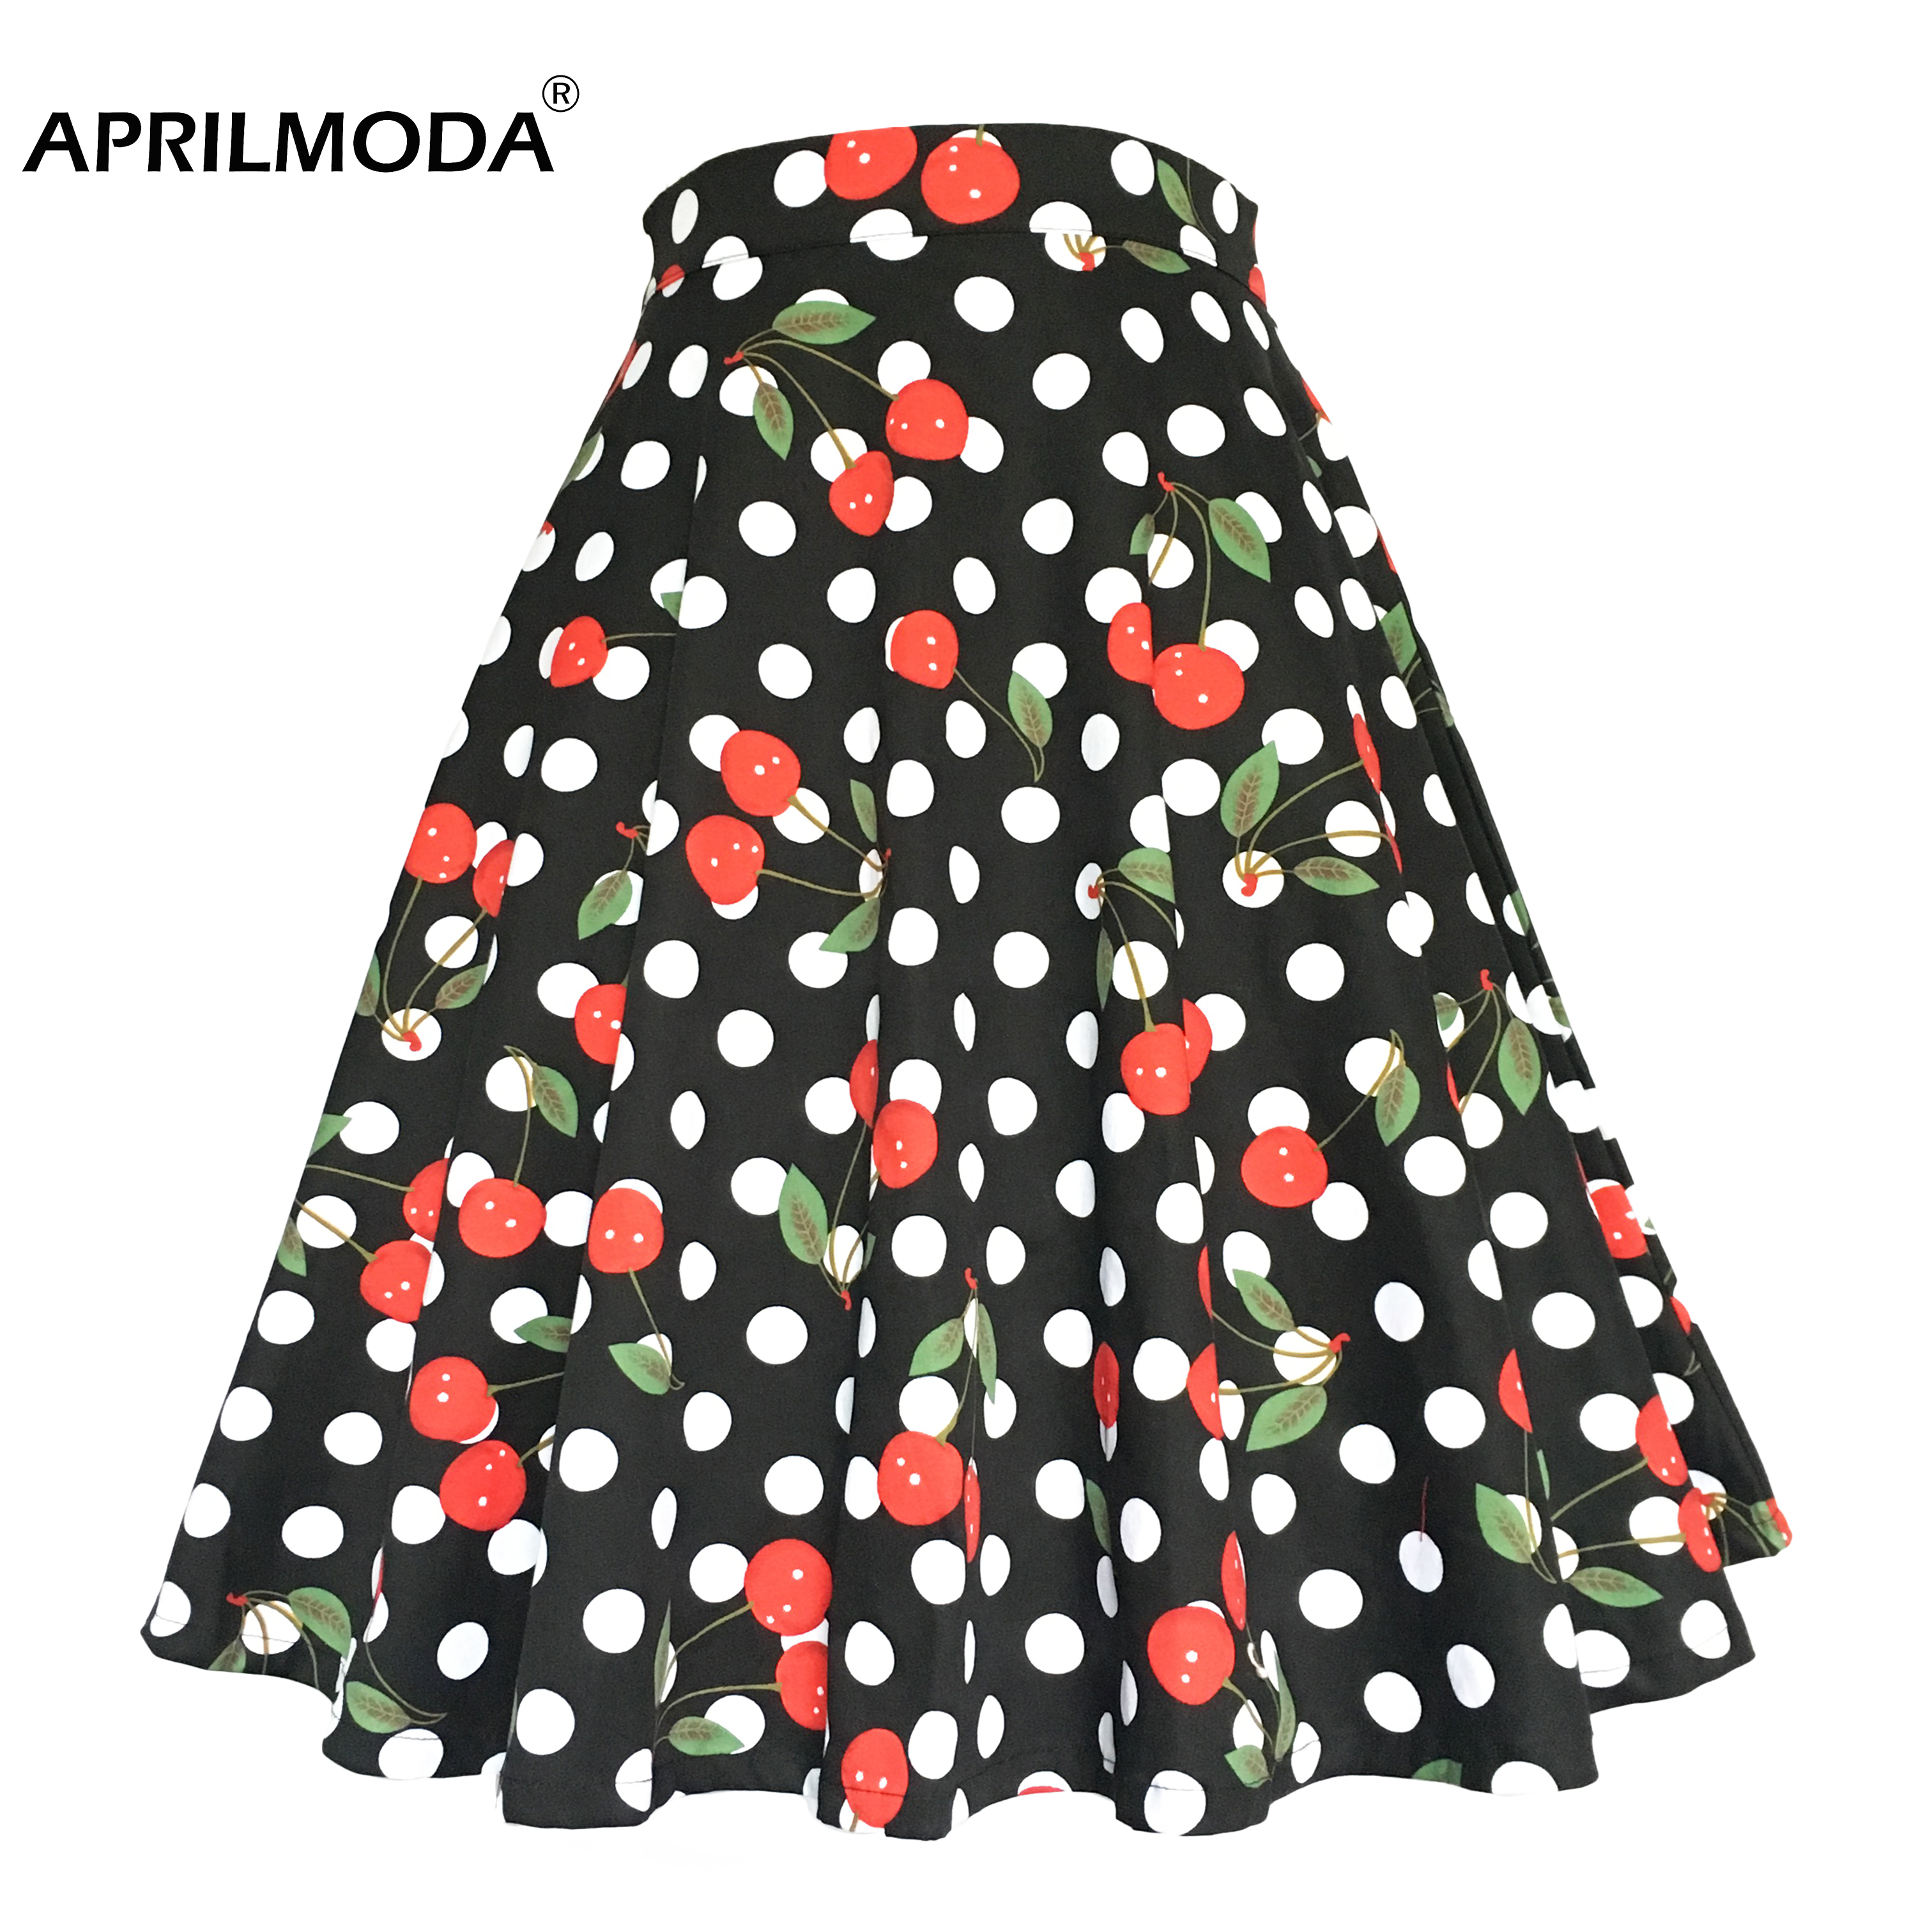 Cherry Printed 1950s Rockabilly Pleated Skirt High Waist Retro Vintage Summer Casual 50s 60s Big Swing Plus Size Skirts Skater